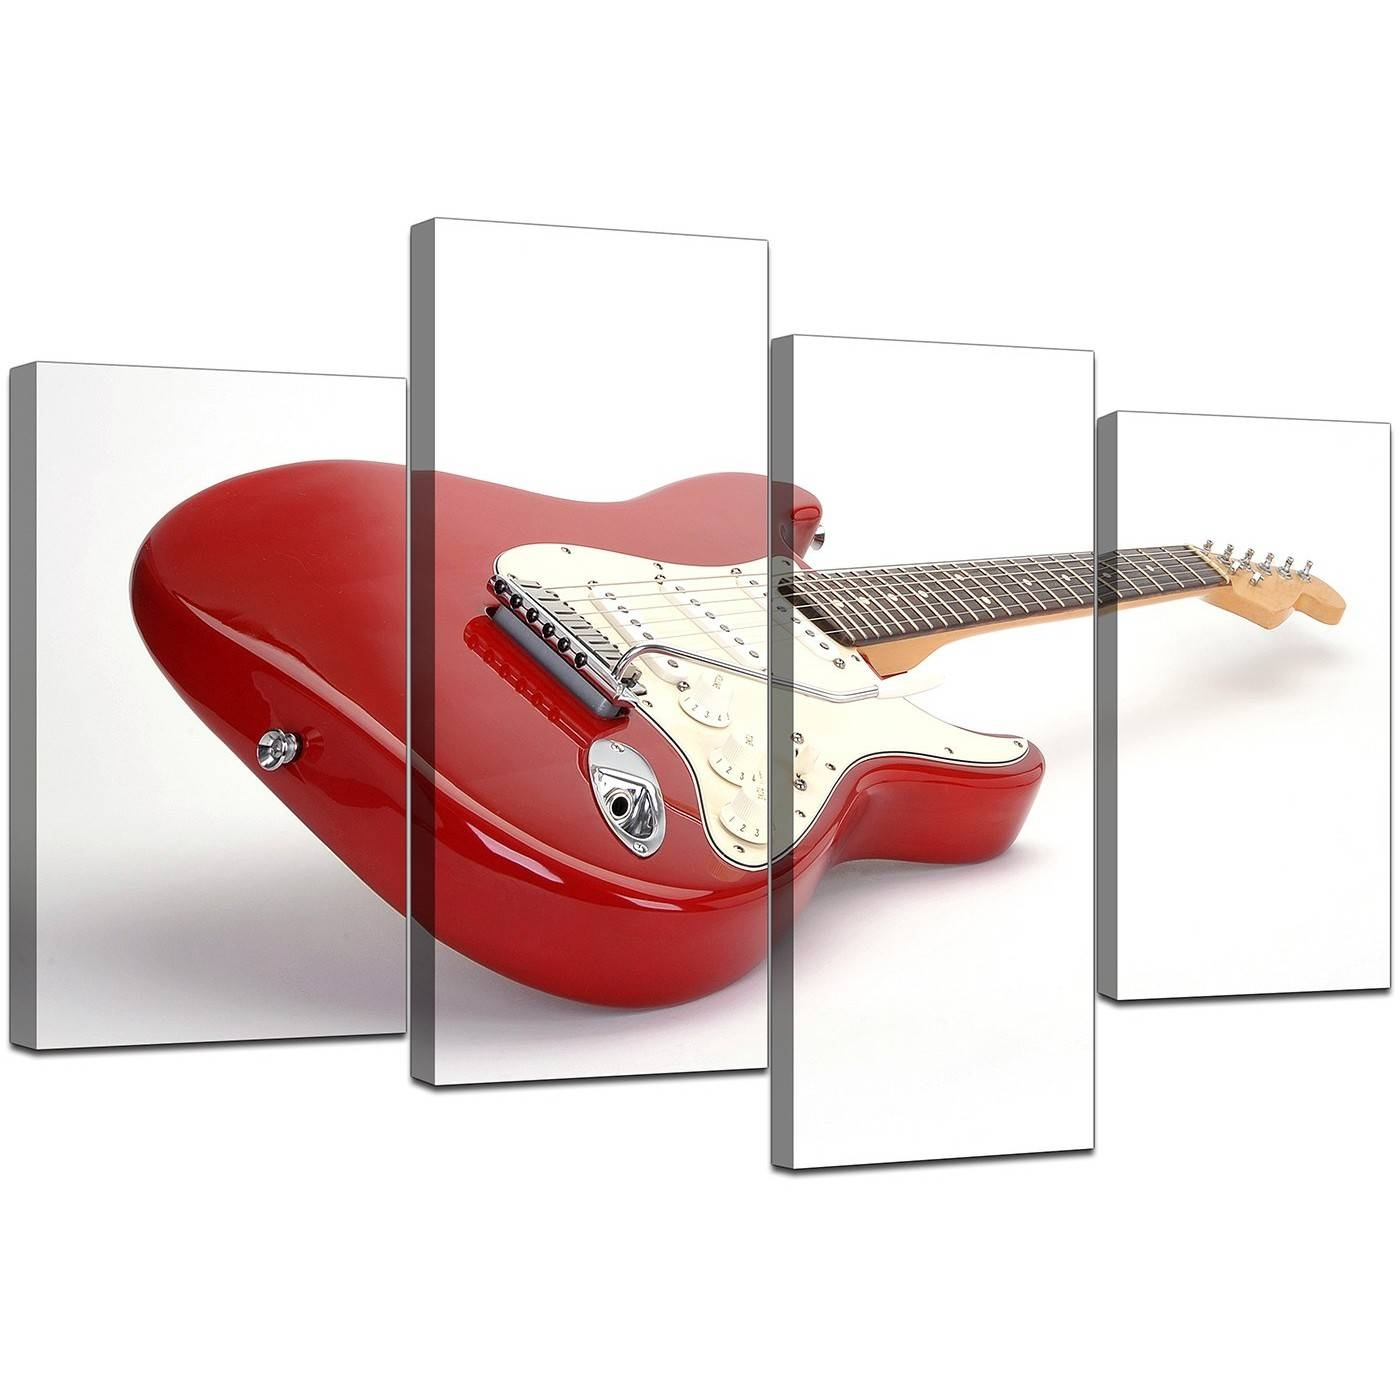 Electric Guitar Canvas Wall Art In Red – For Bedroom Inside Most Popular Guitar Canvas Wall Art (View 13 of 20)